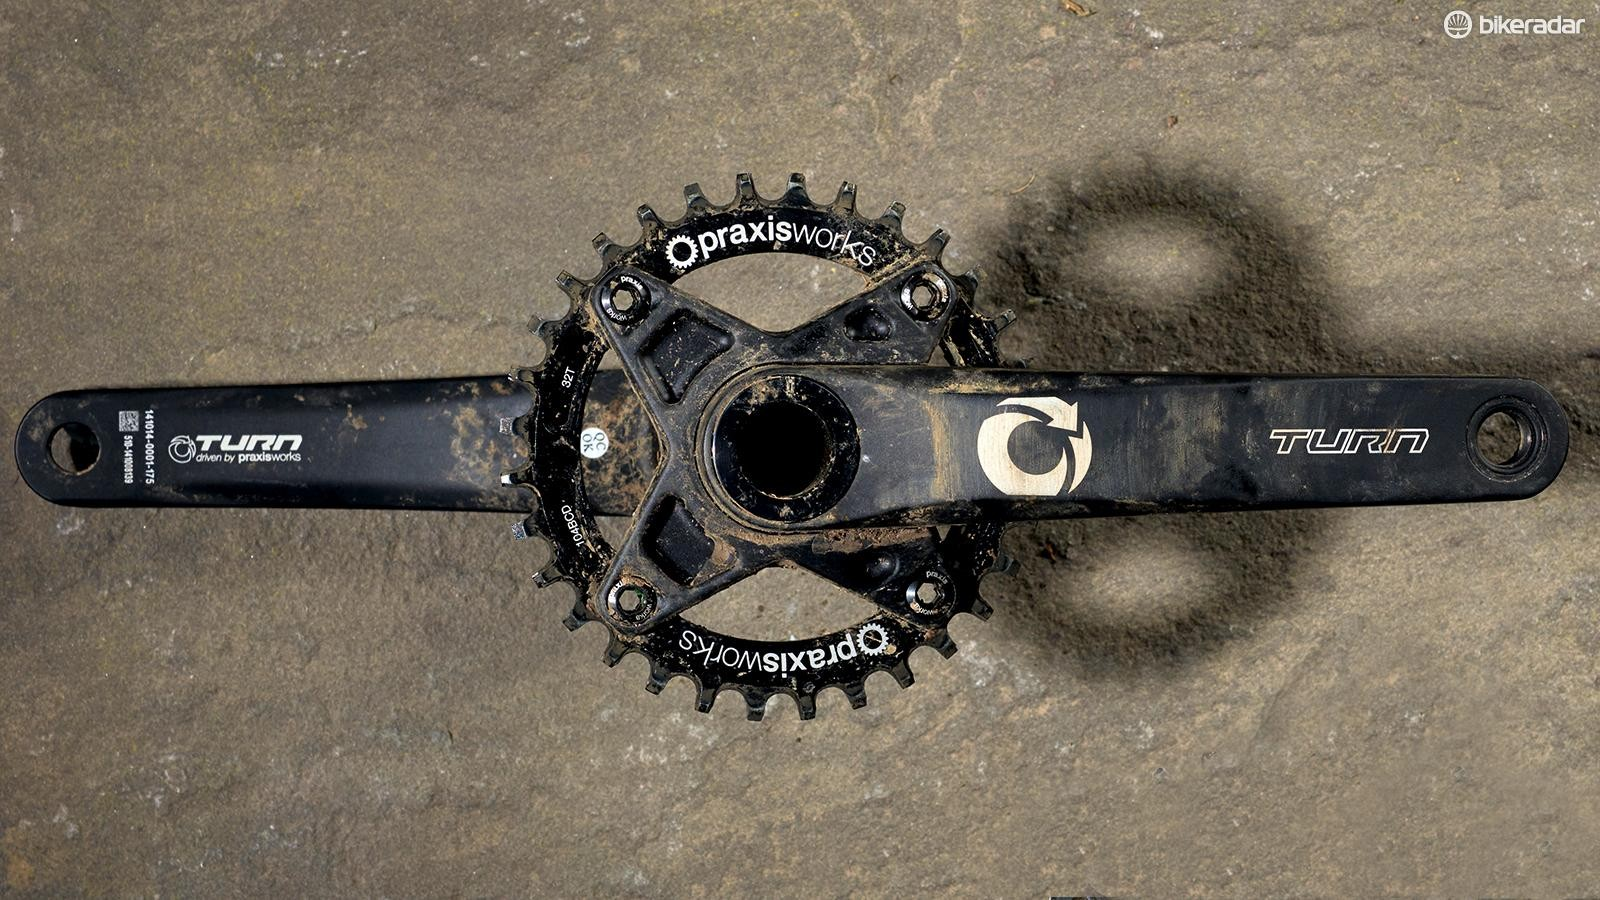 Praxis' Works Turn Girder M30 cranks have an almost medieval quality to them